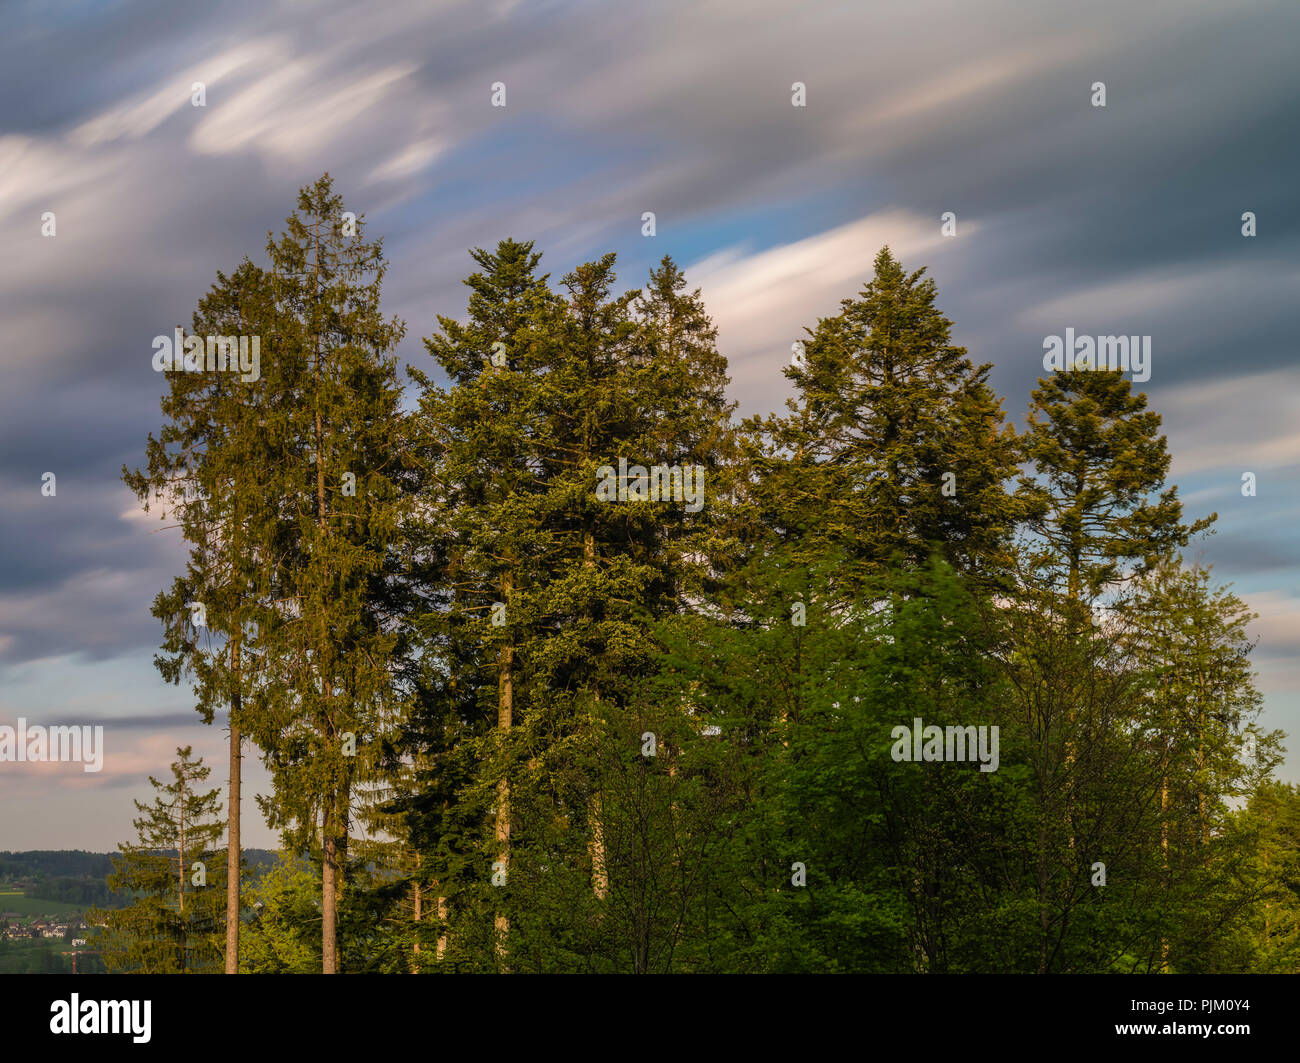 Tree group of conifers in the evening light in front of moving clouds - Stock Image